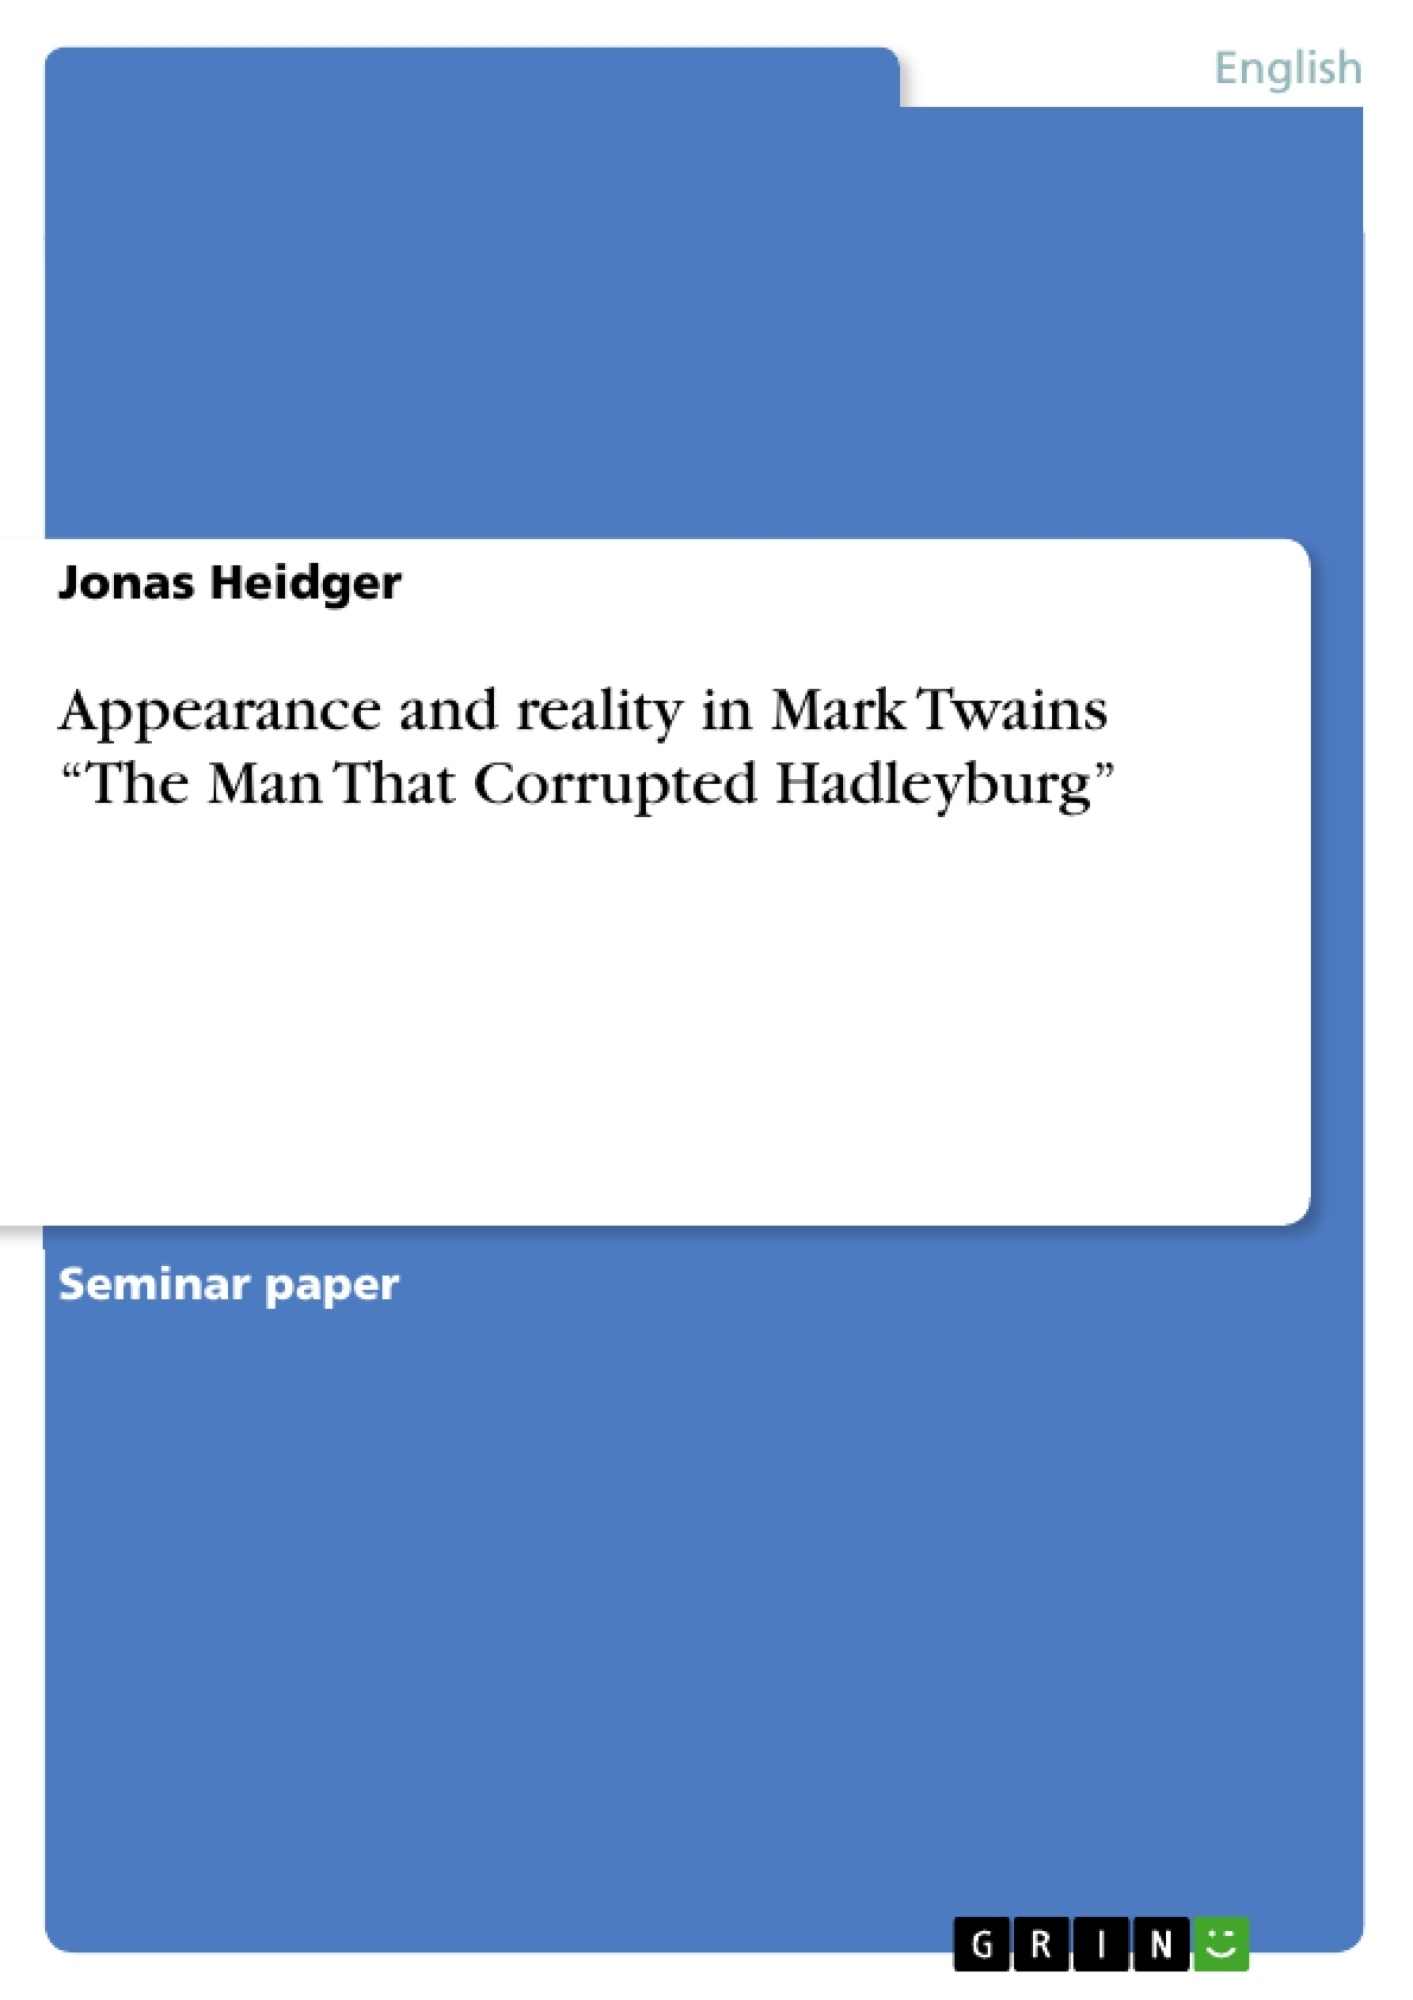 """Title: Appearance and reality in Mark Twains """"The Man That Corrupted Hadleyburg"""""""